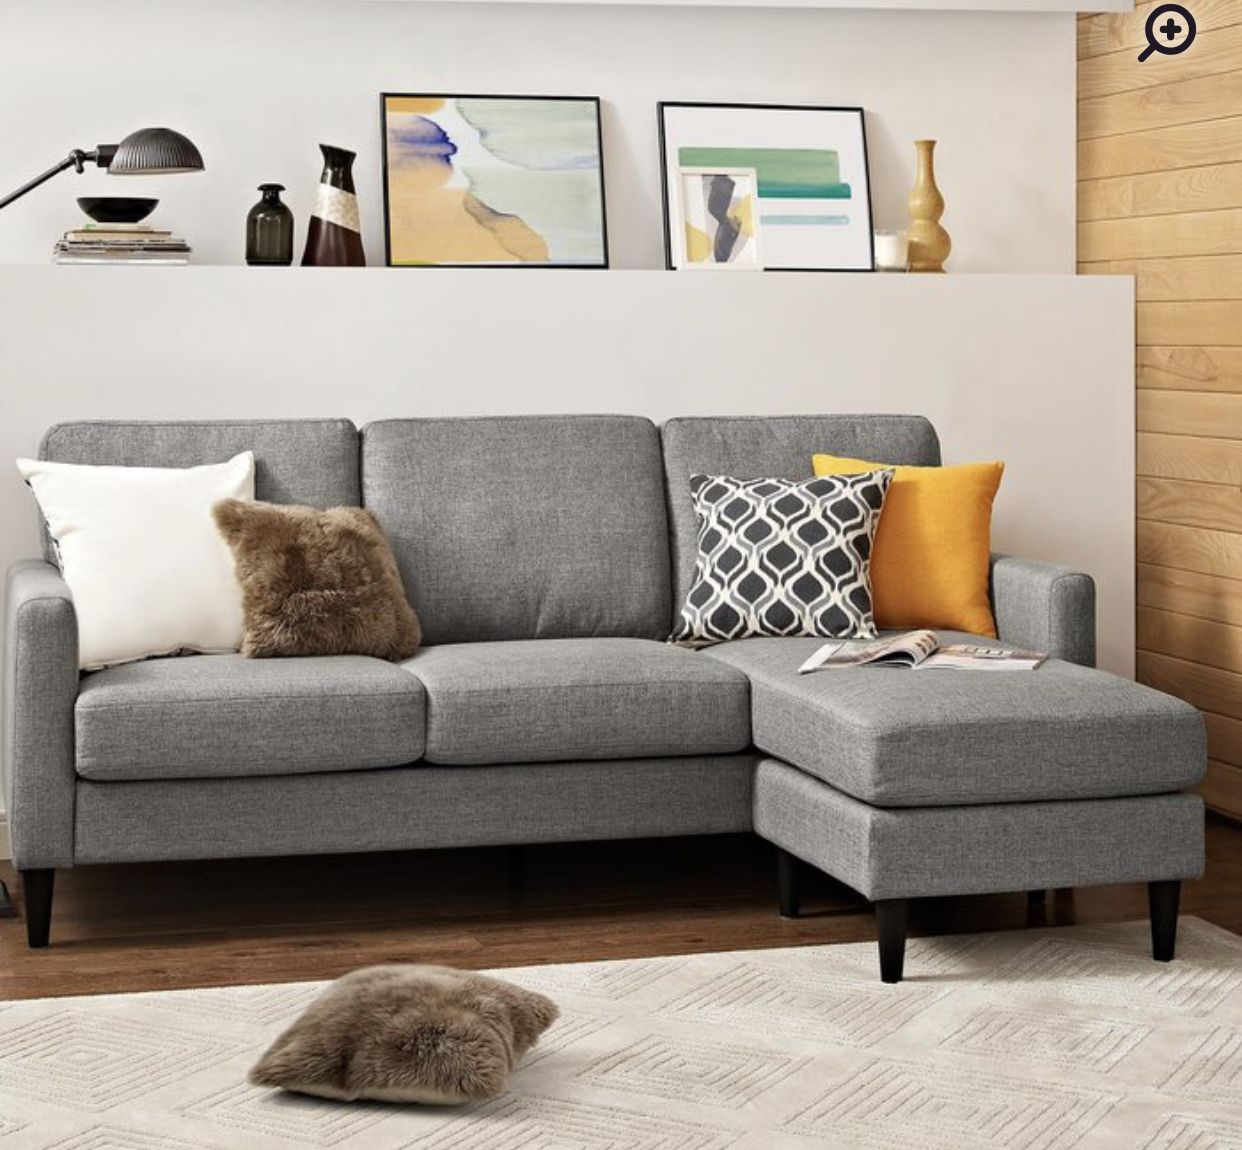 Swell 559 00 Wayfair Apartment In 2019 Furniture Sectional Bralicious Painted Fabric Chair Ideas Braliciousco